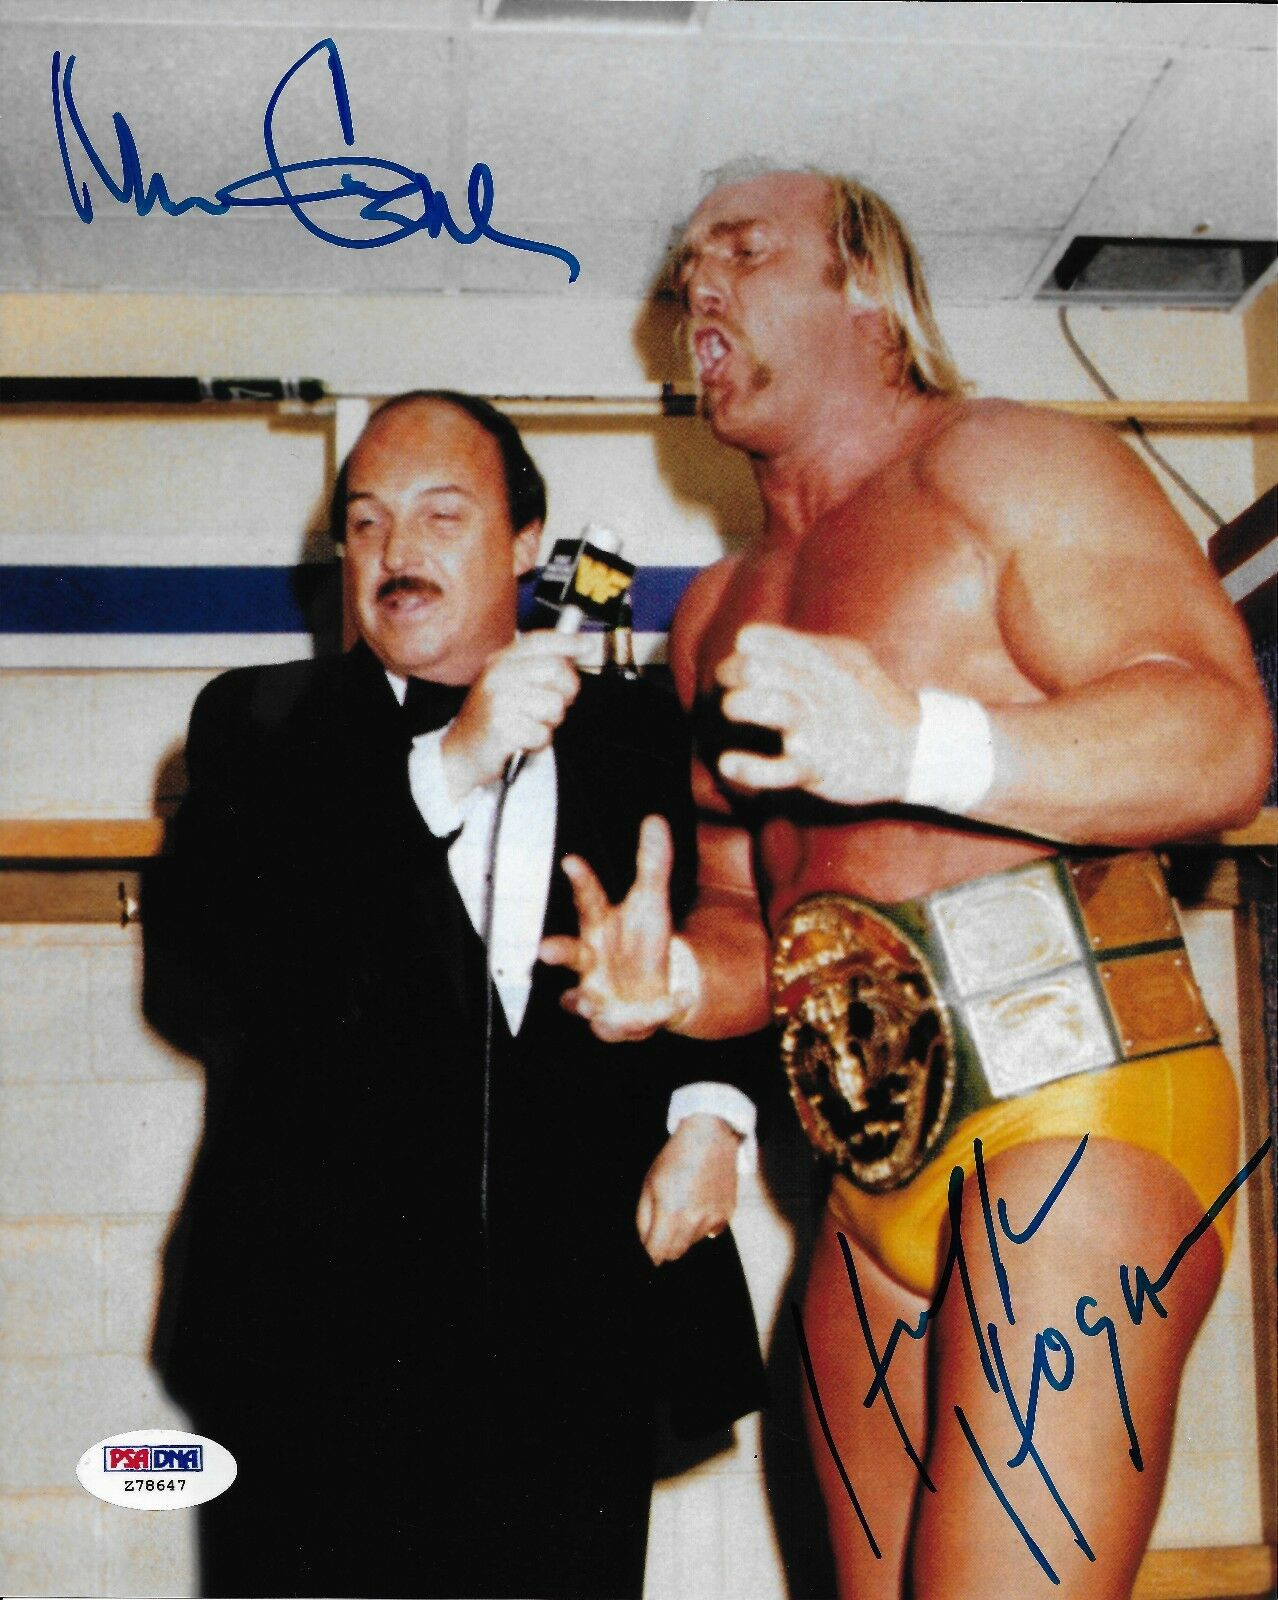 Hulk Hogan & Mean Gene Okerlund Signé Wwe 8x10 Photo PSA   DNA COA Auto 'D Image